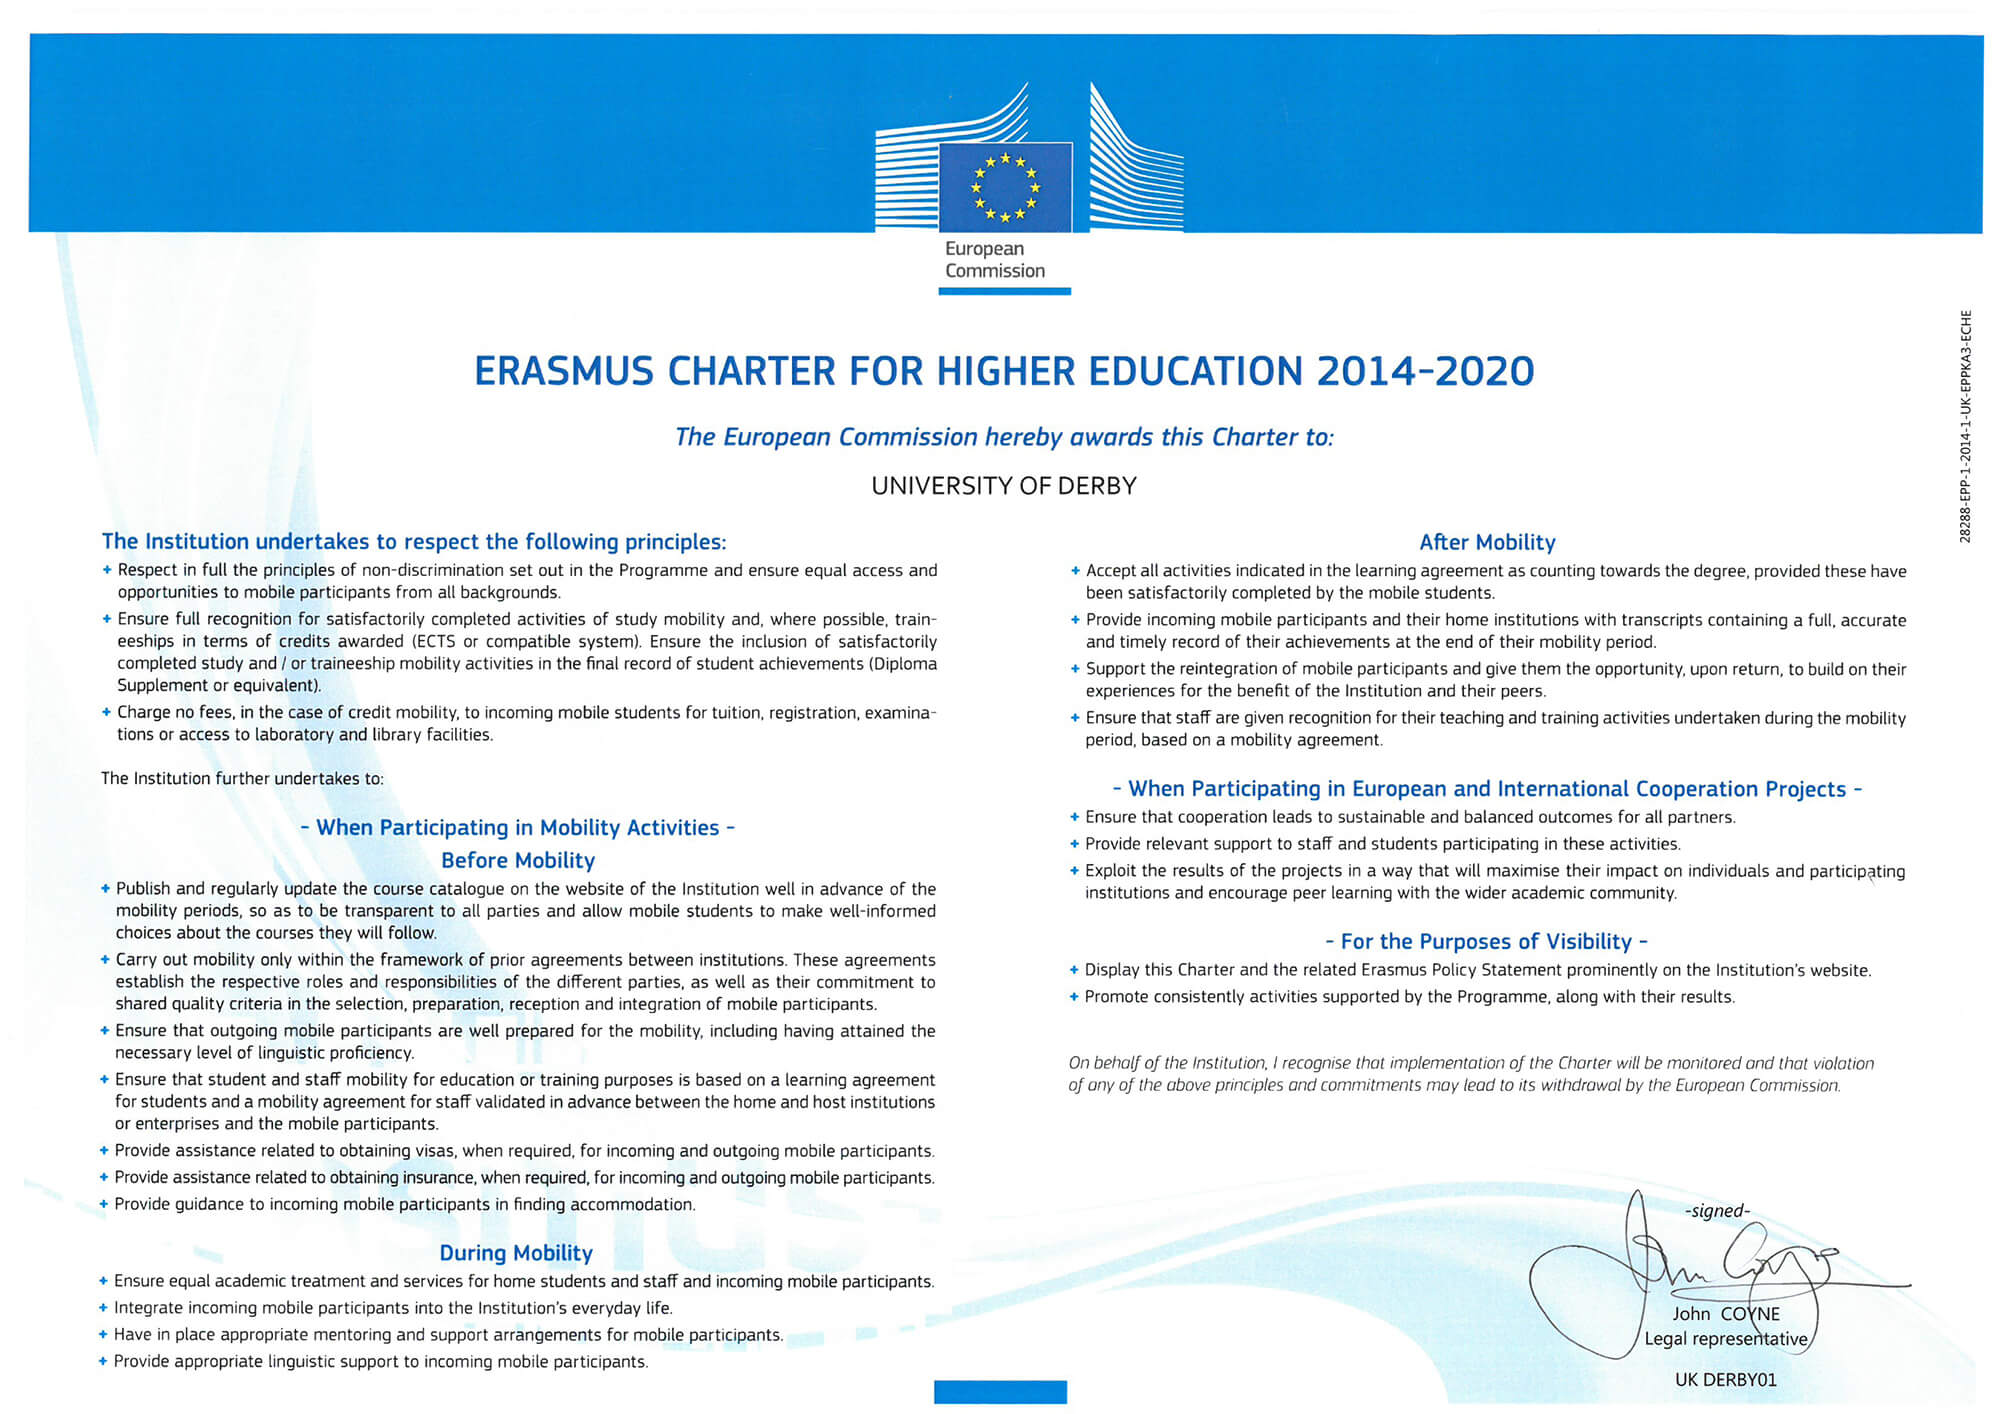 the University of Derby's Erasmus Charter